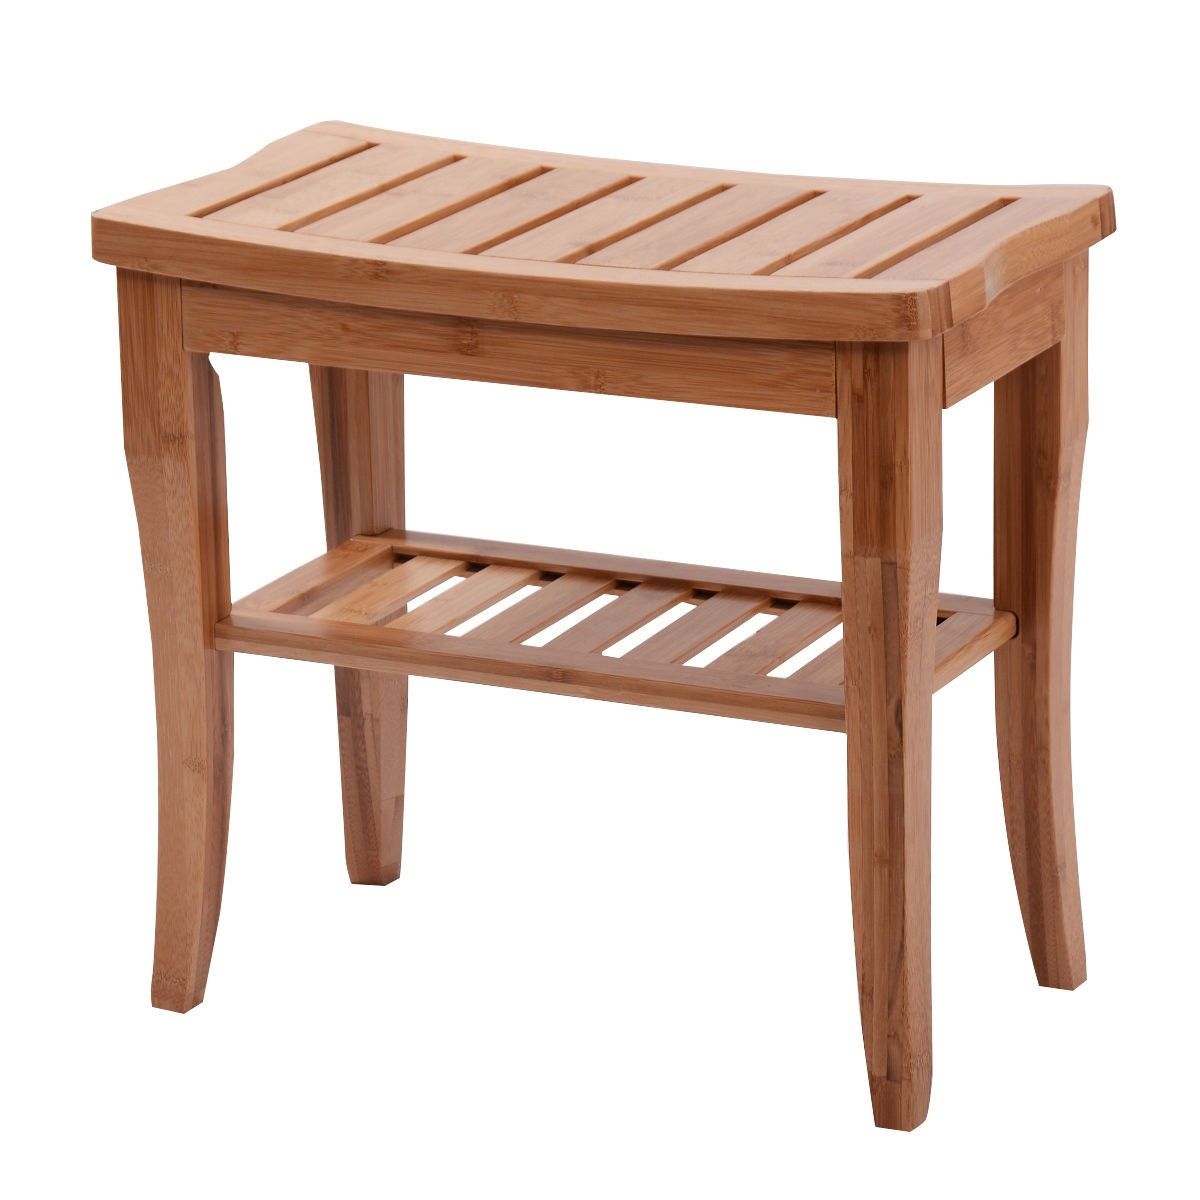 Us Medical Spa Storage Bamboo Shower Bench Bath Seat Chair